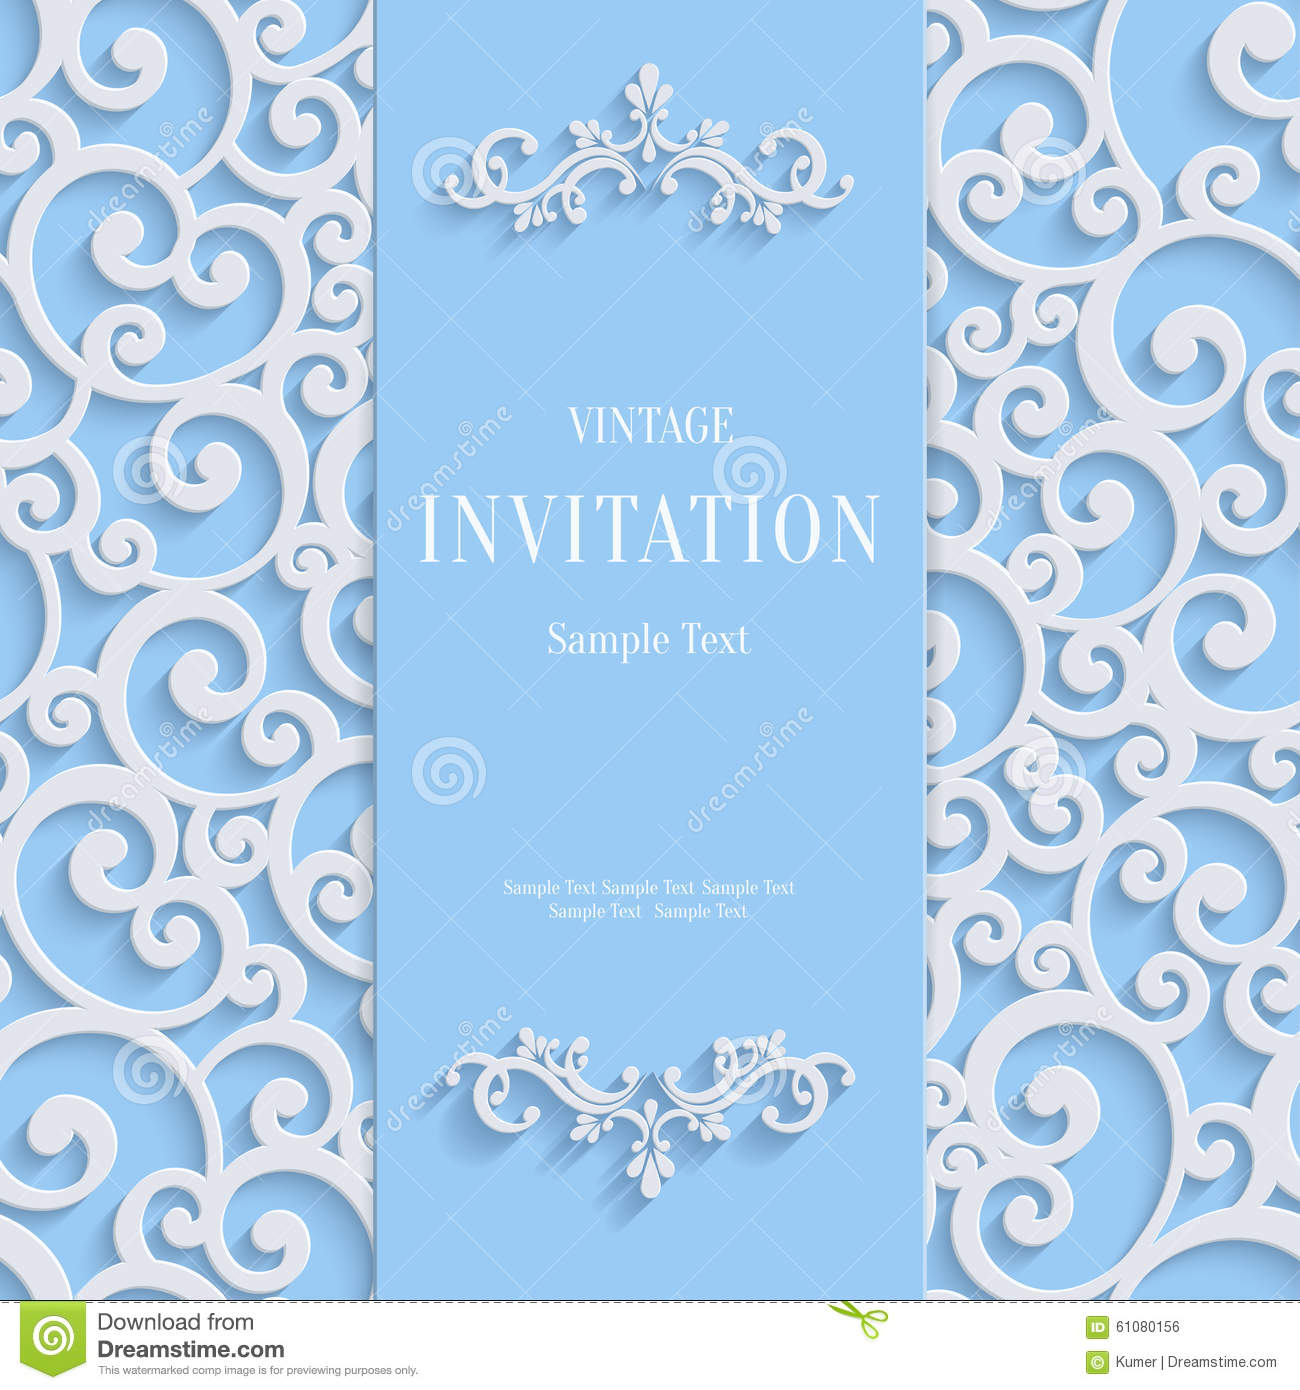 Vector Blue 3d Vintage Invitation Card With Swirl Damask ...